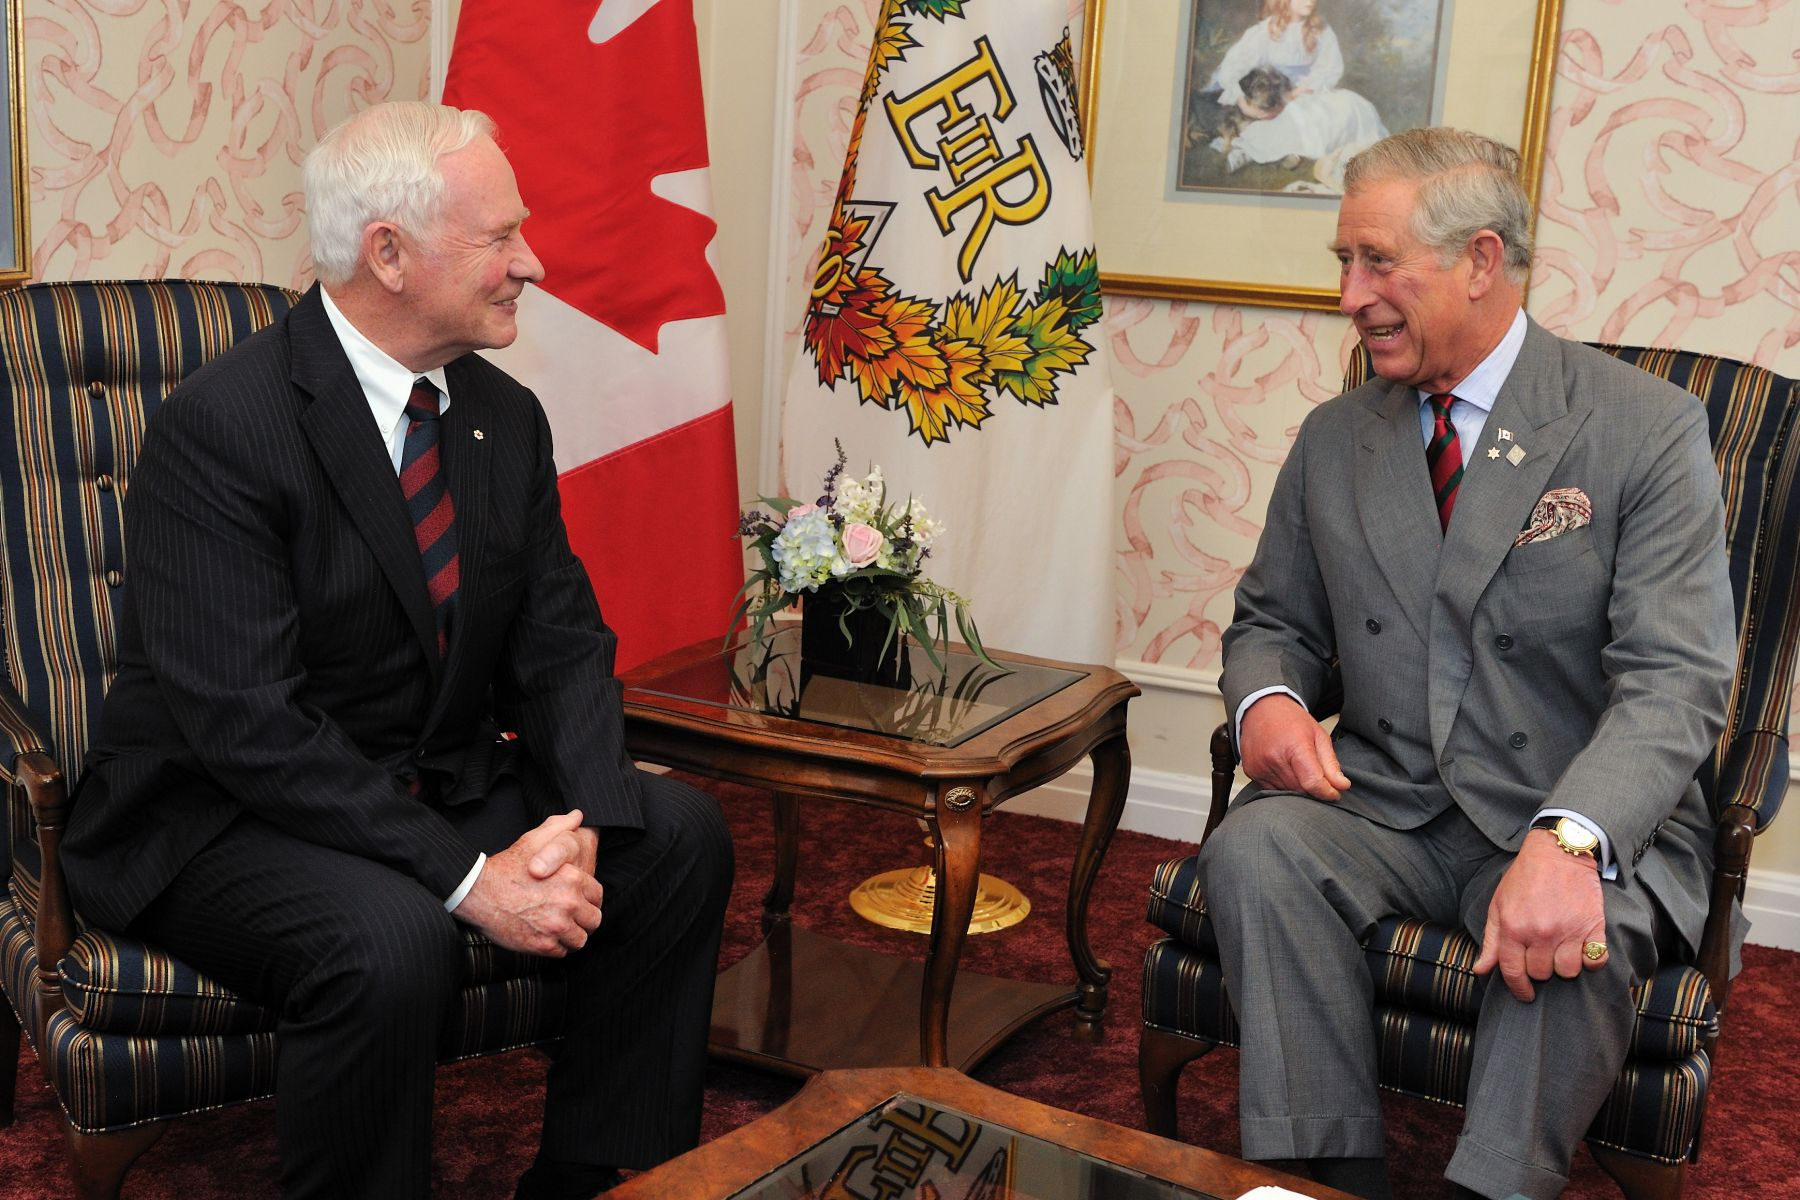 His Royal Highness The Prince of Wales met with the Governor General on the last day of his visit to Canada.